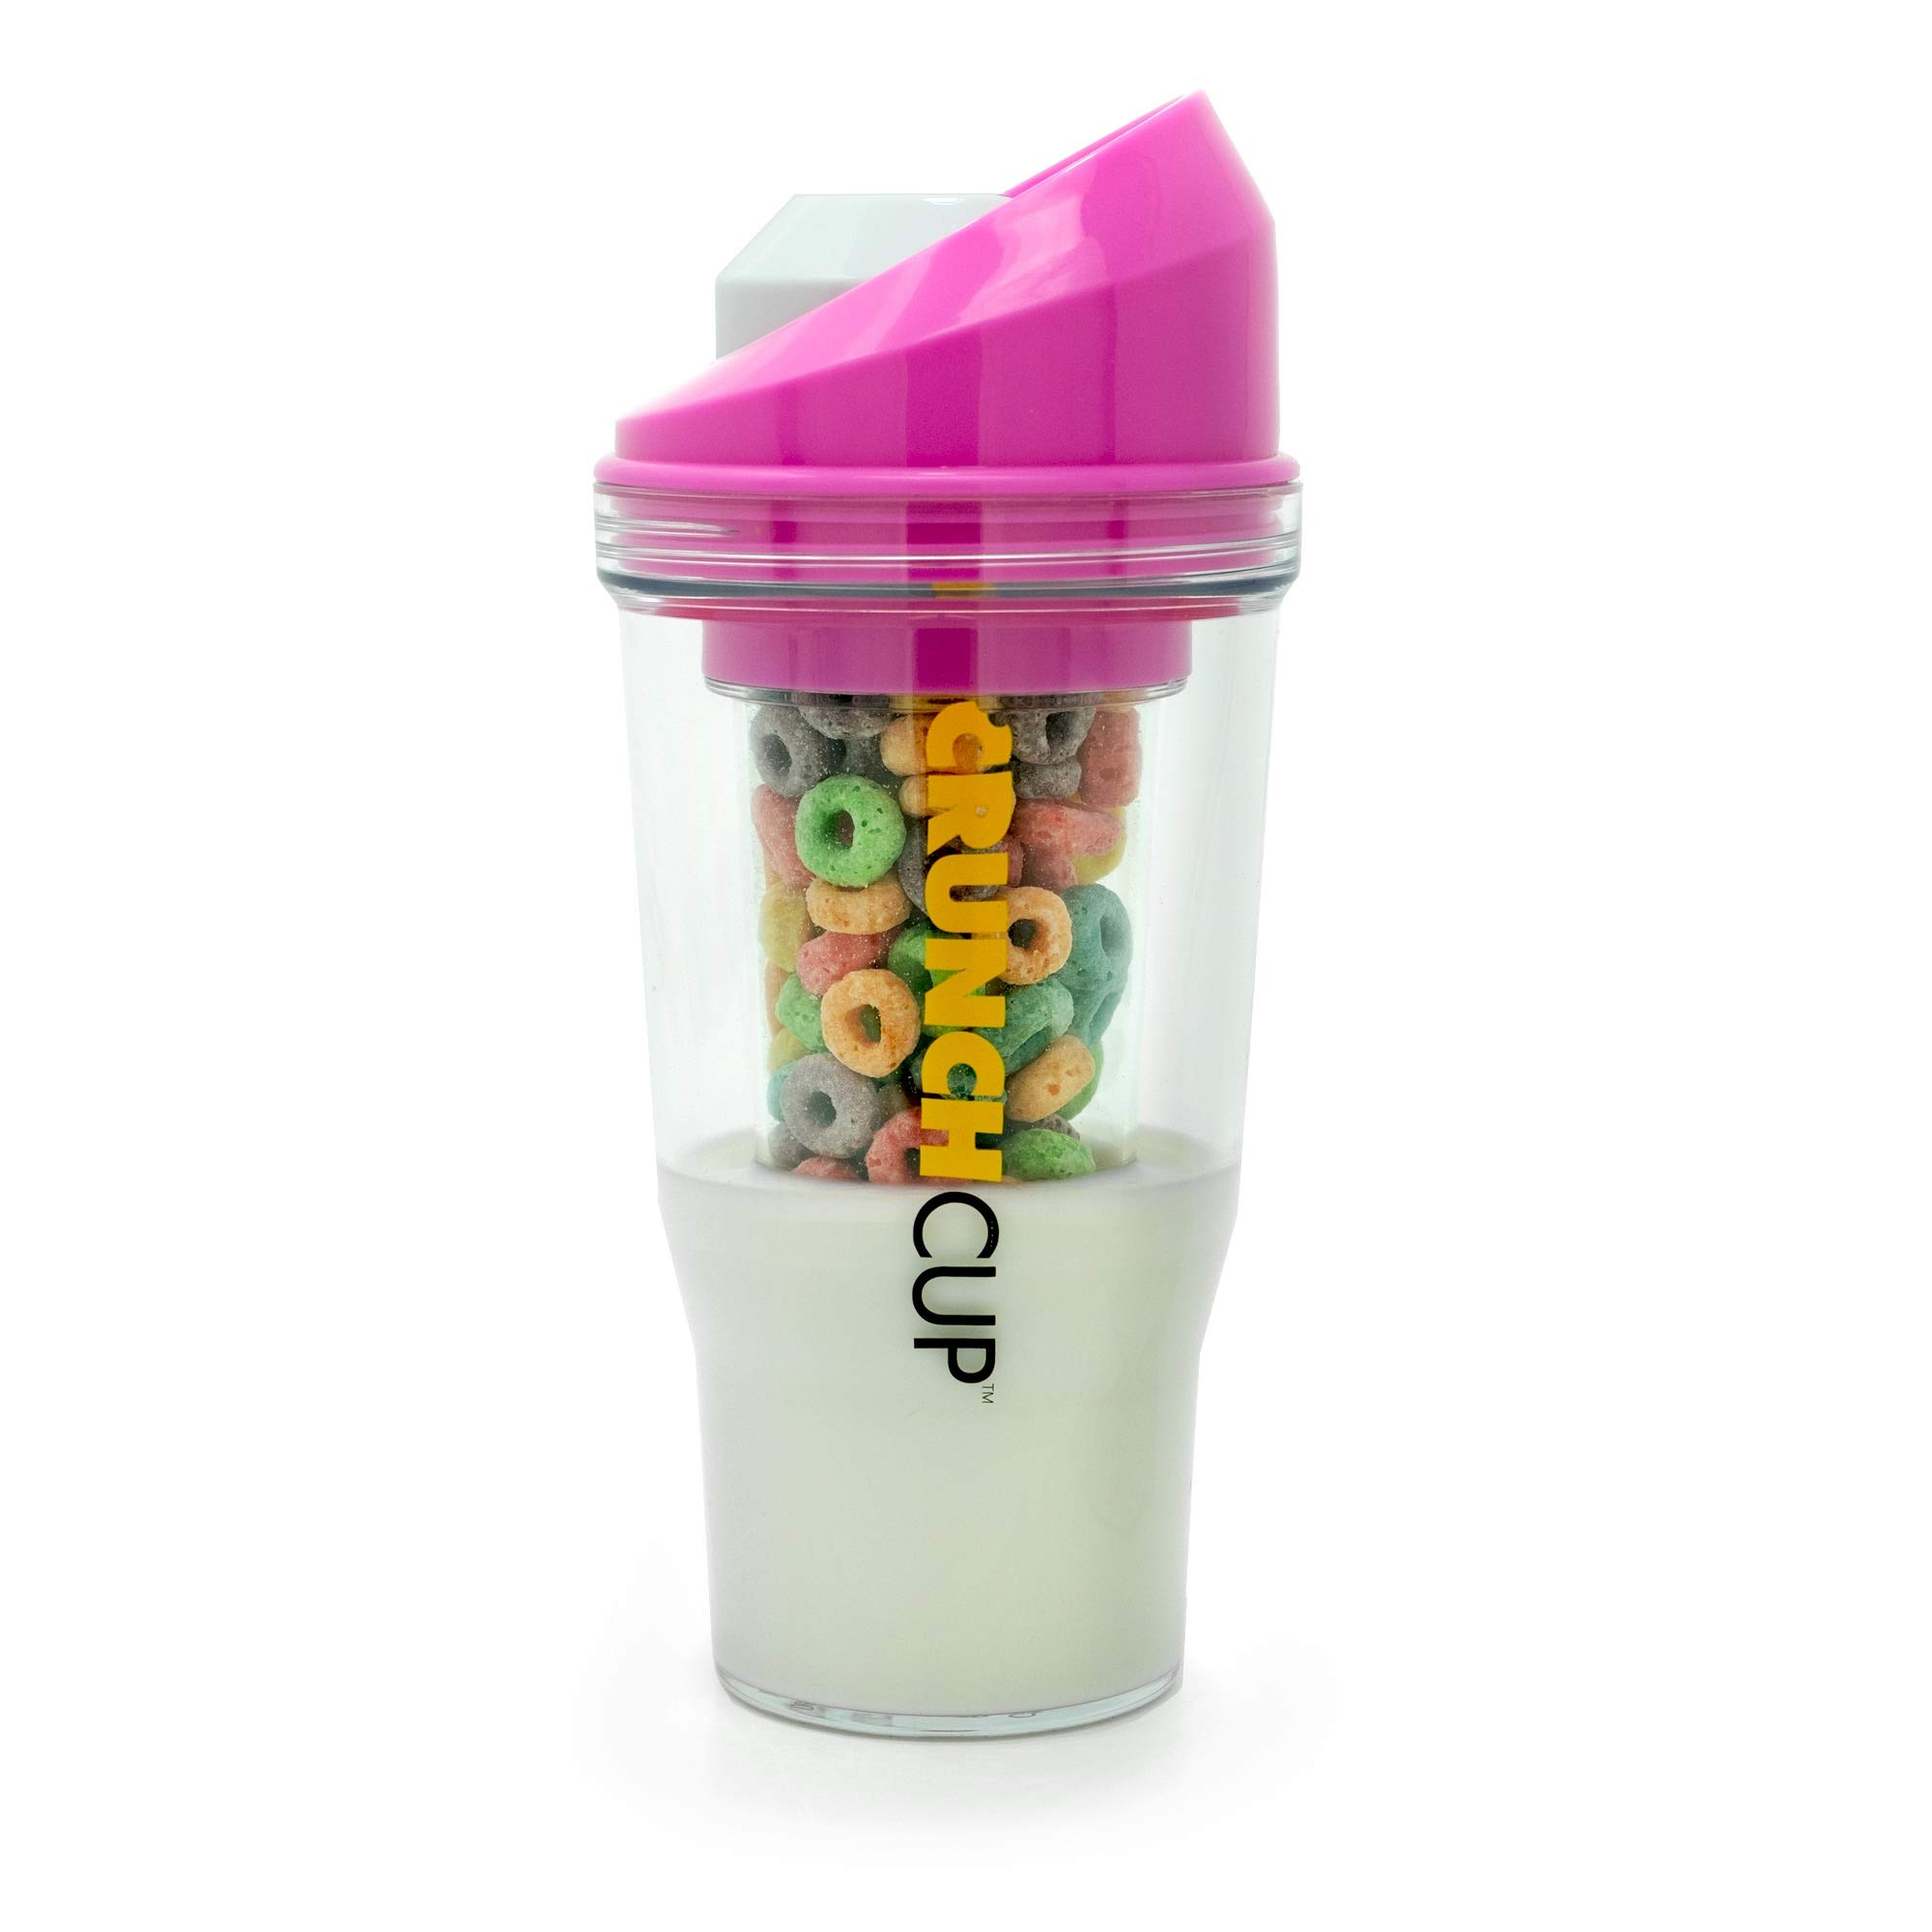 The CrunchCup - A Portable Cereal Cup - No